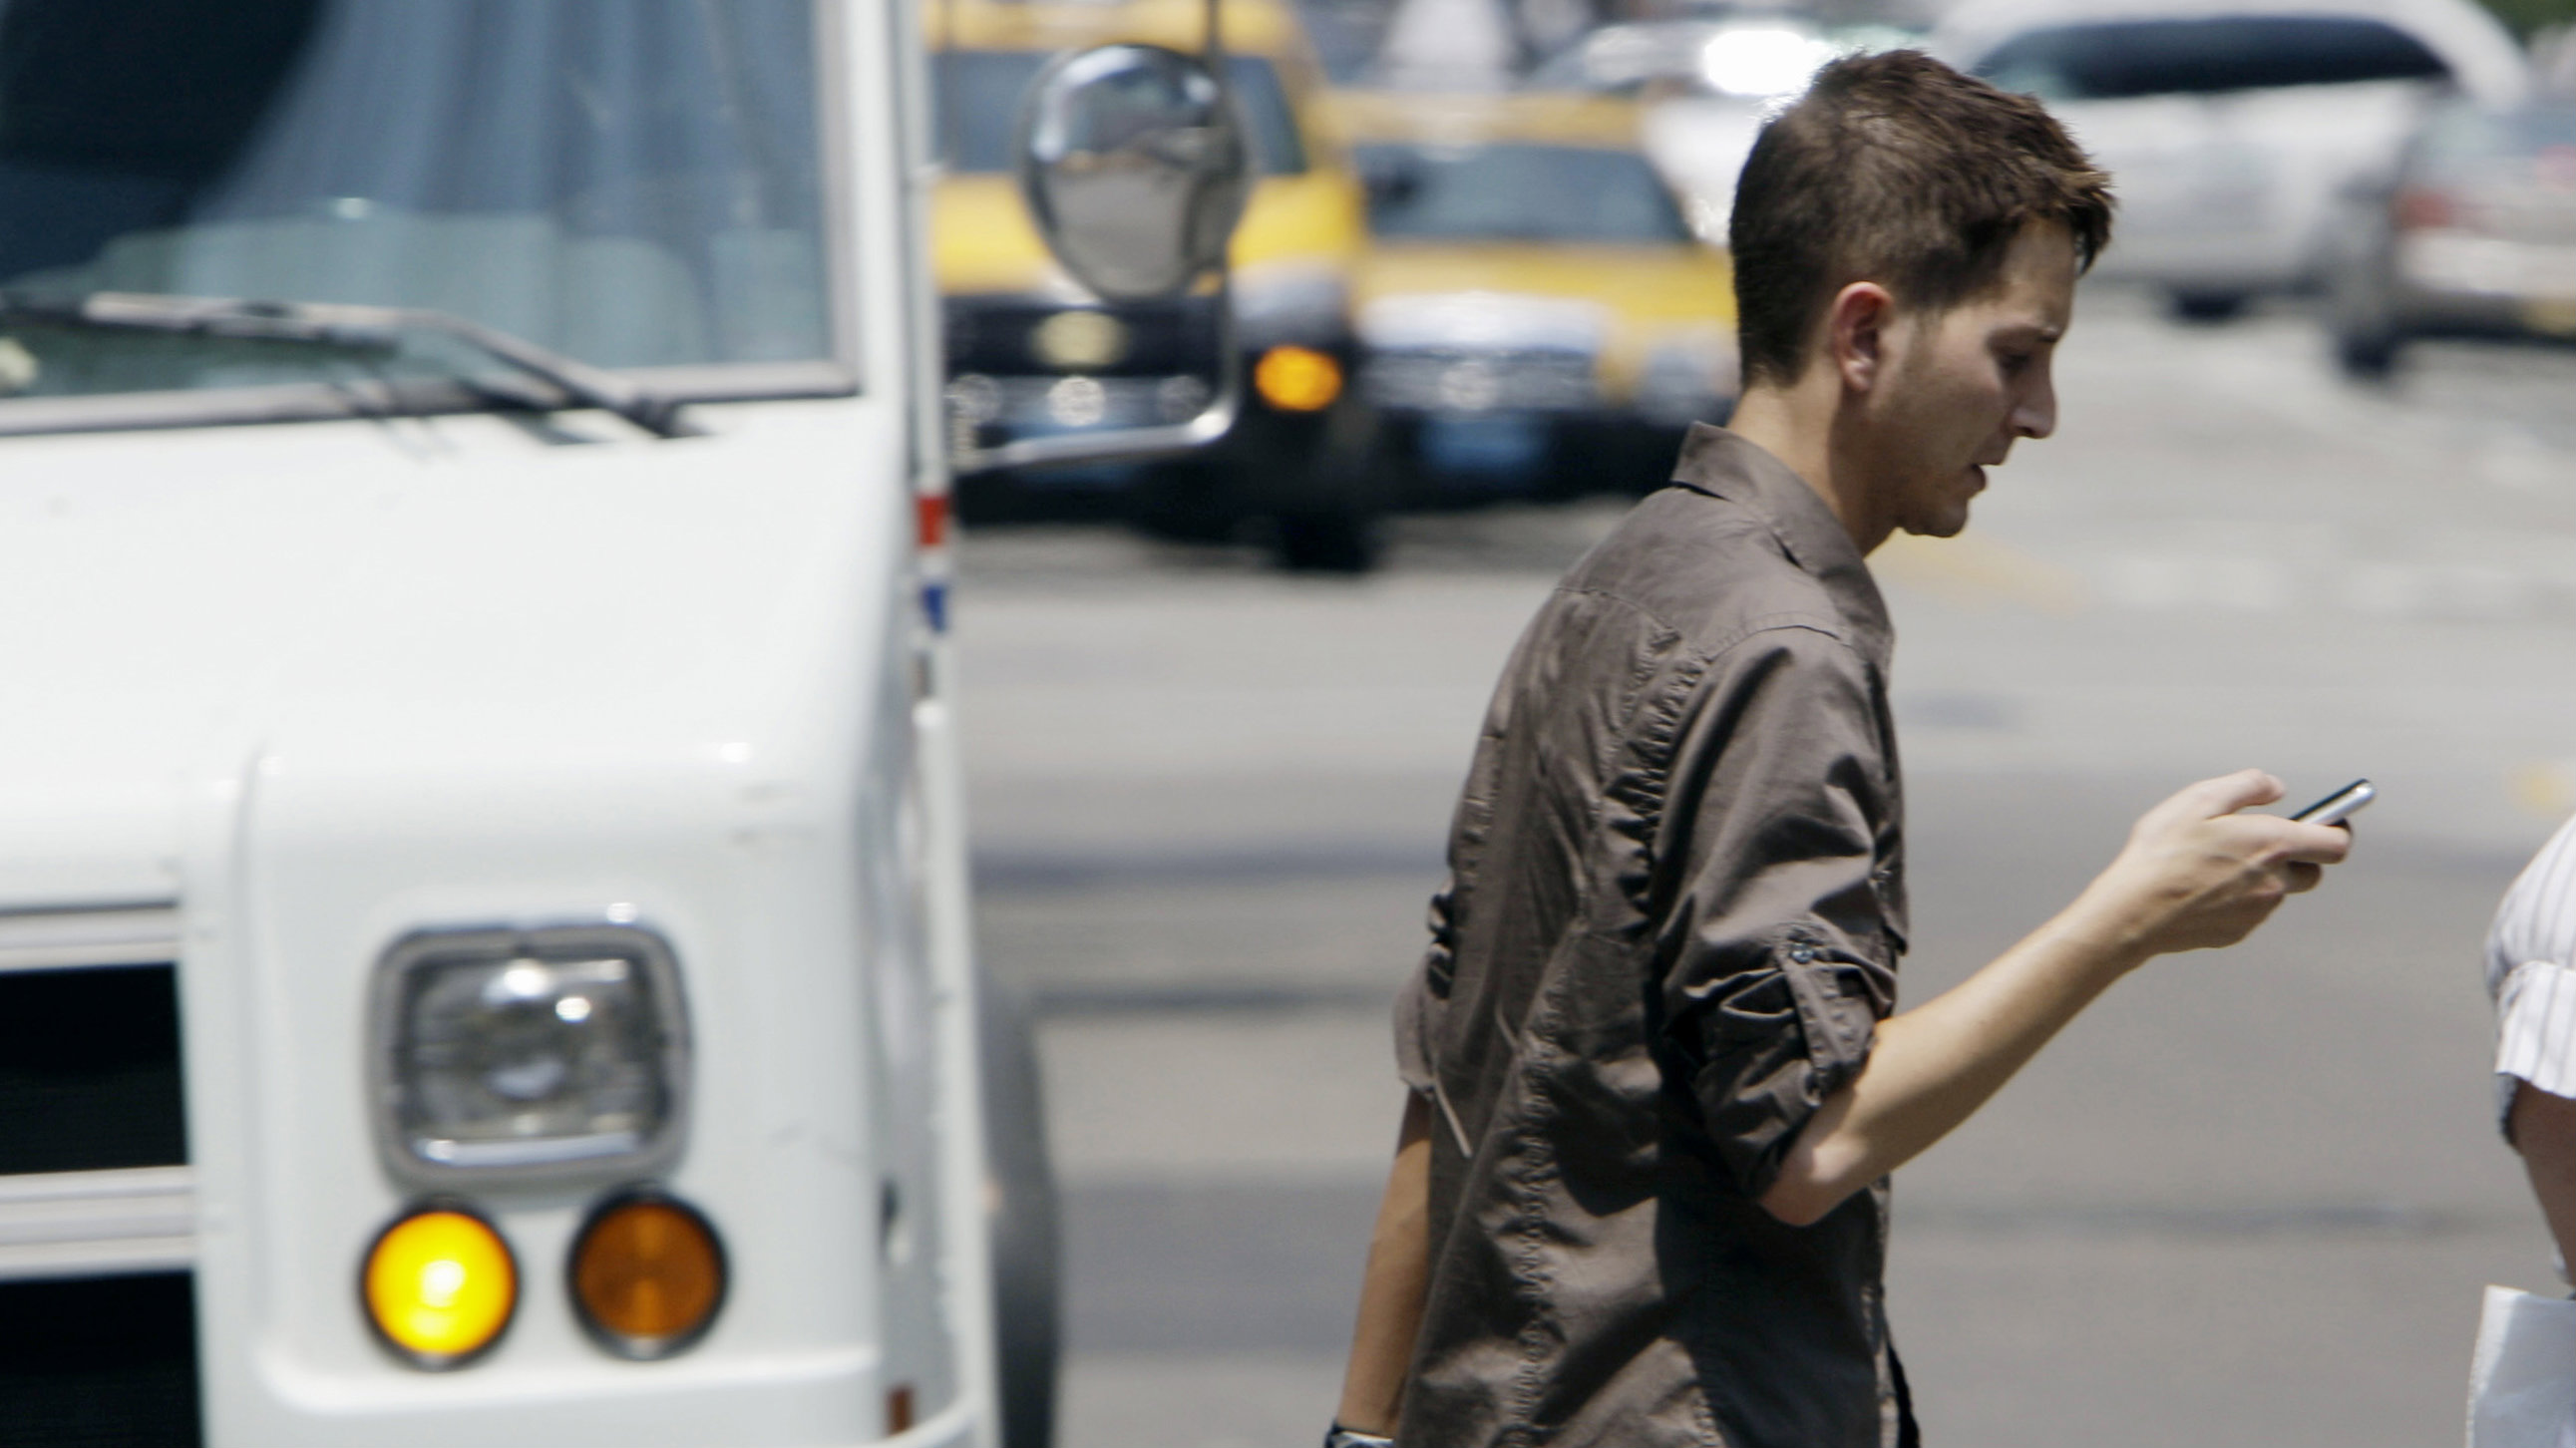 Man crossing street while texting